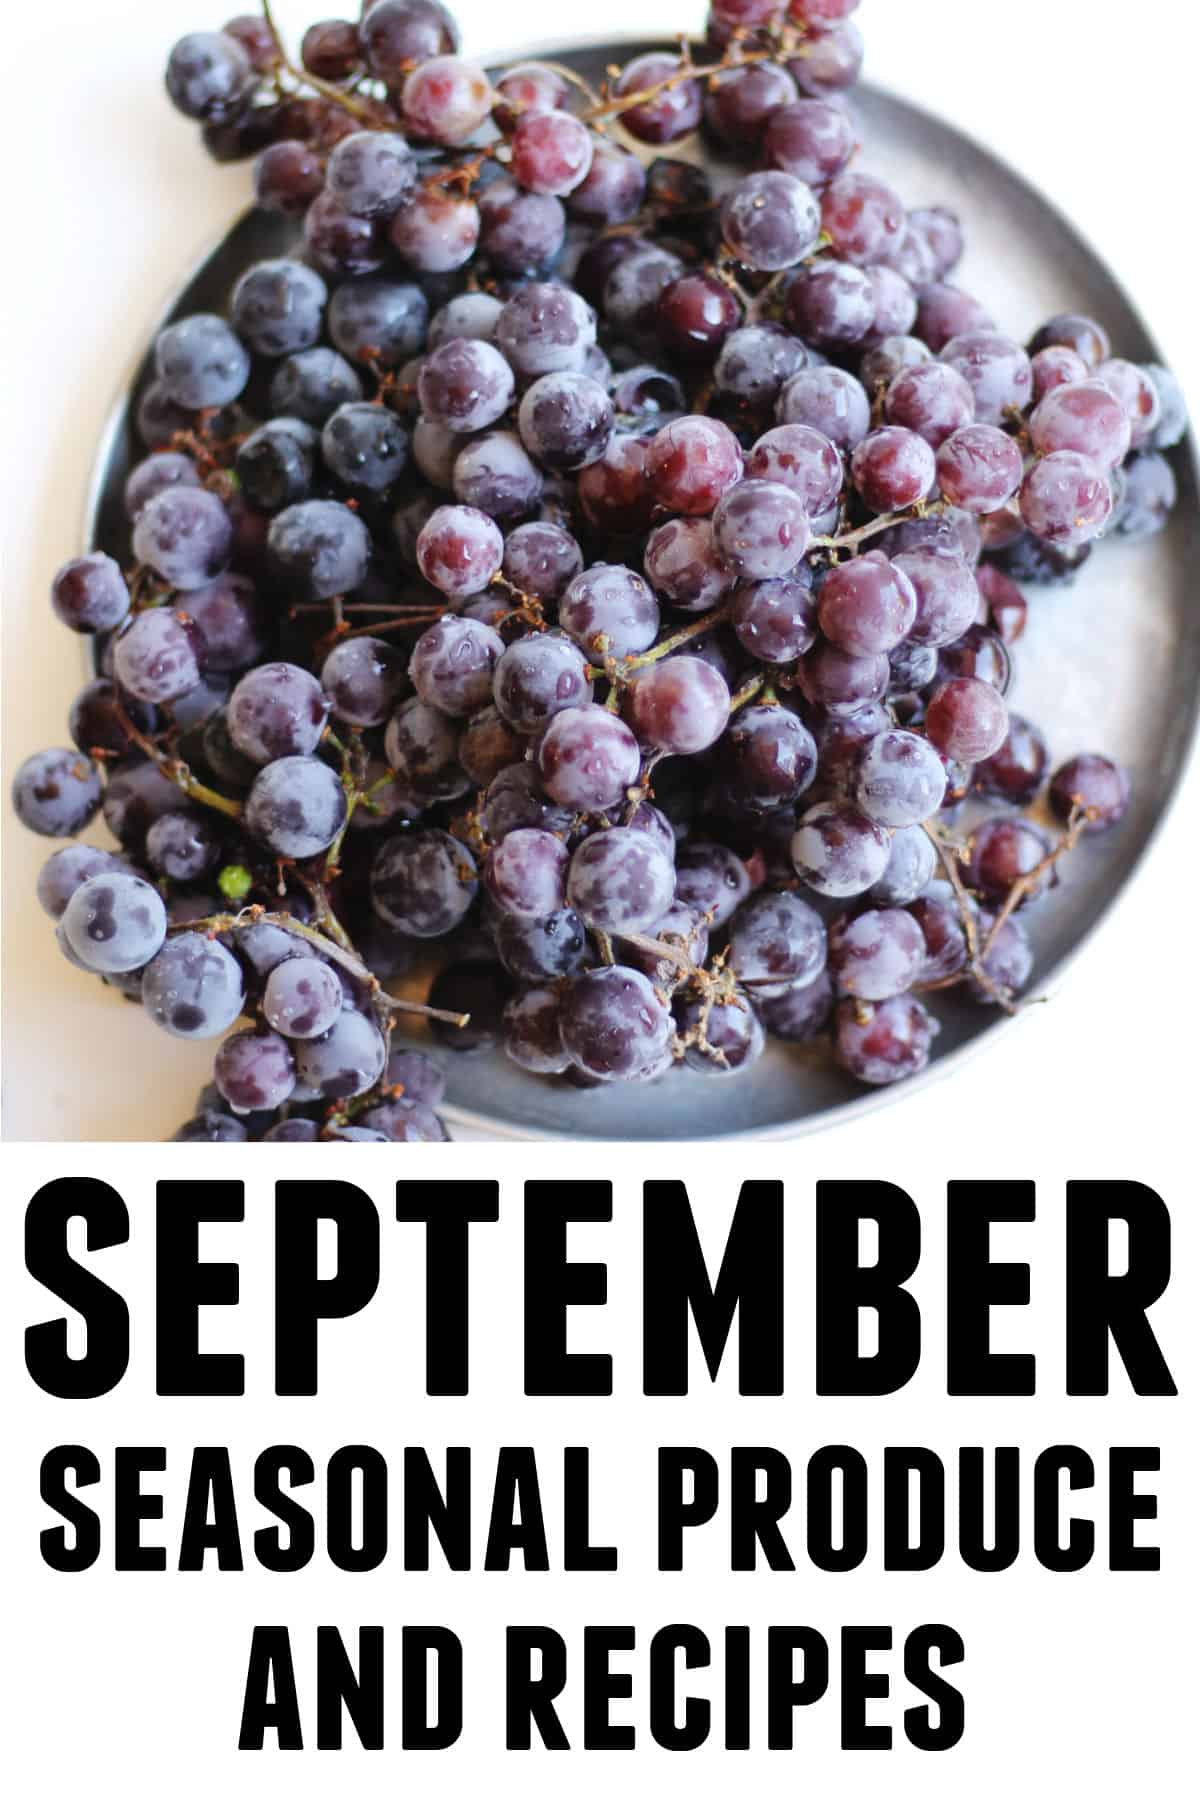 September seasonal produce and recipes graphic with grapes and text